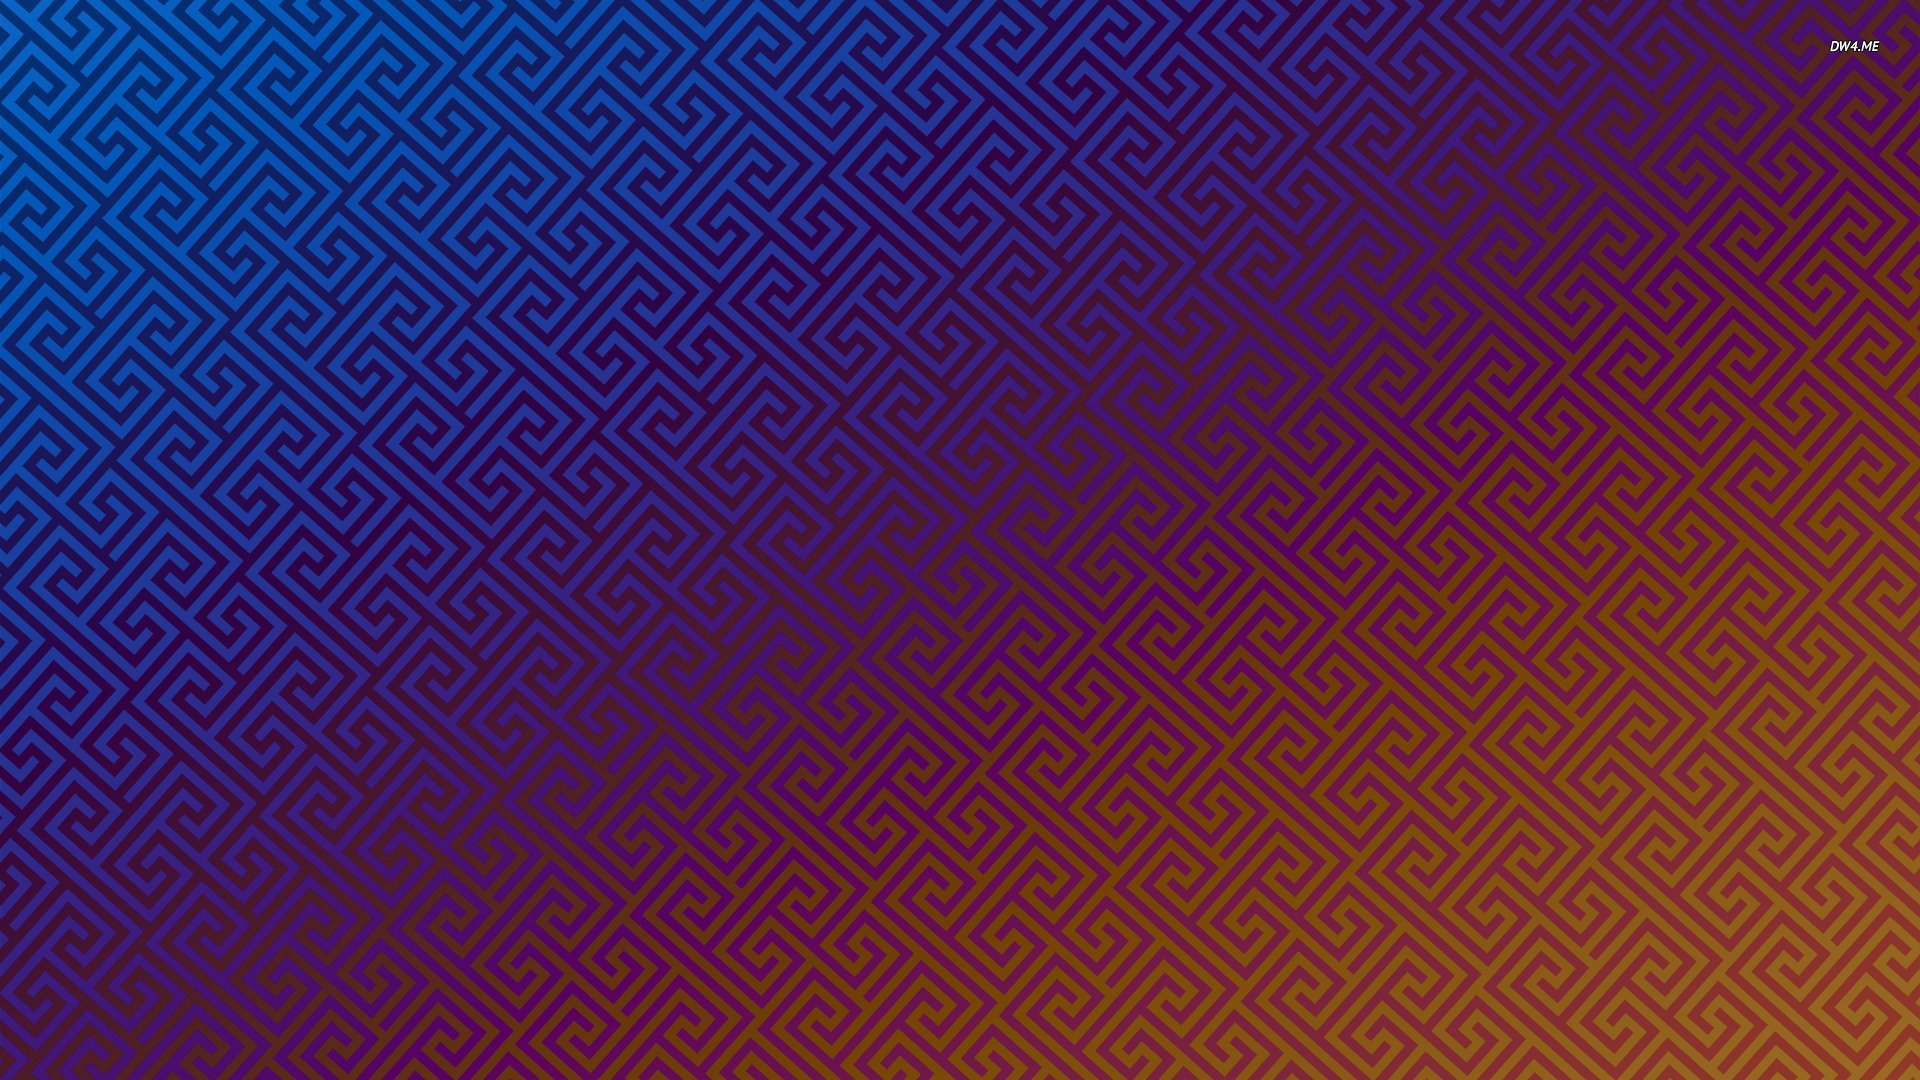 Blue and orange geometrical pattern wallpaper 2560x1600 Blue and 1920x1080